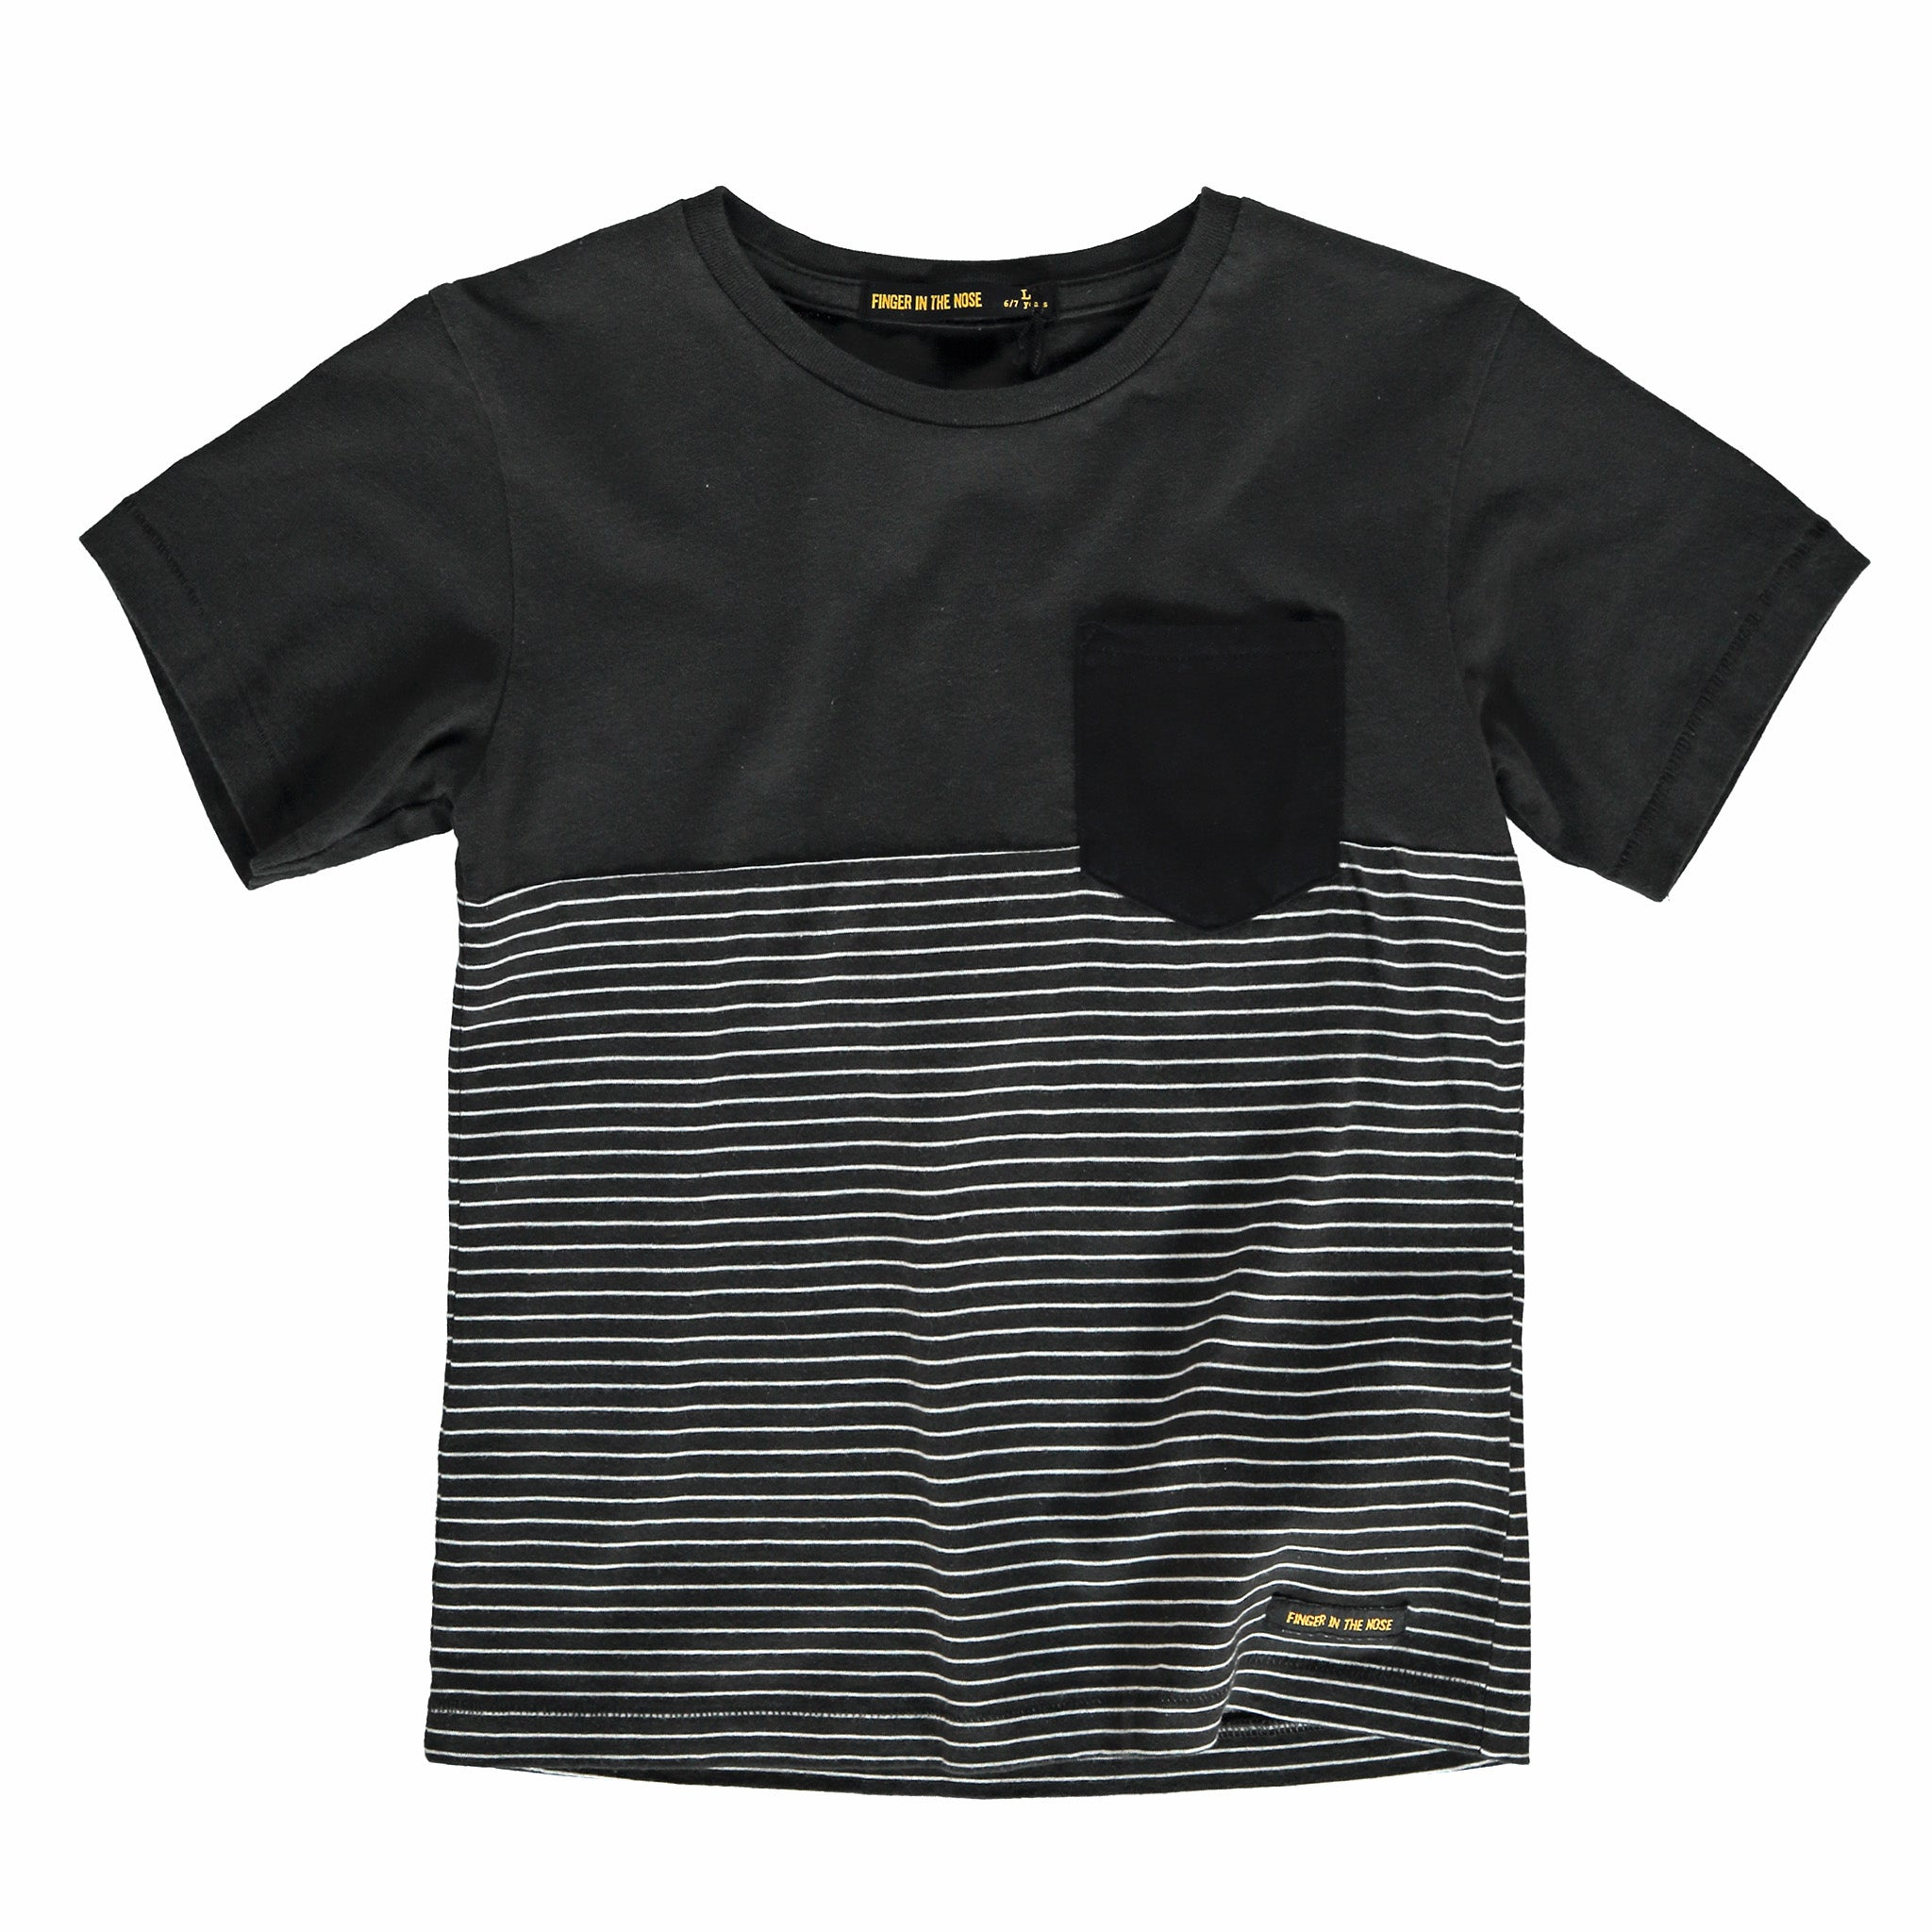 DALTON Summer Black Stripes - Short Sleeve T-Shirt